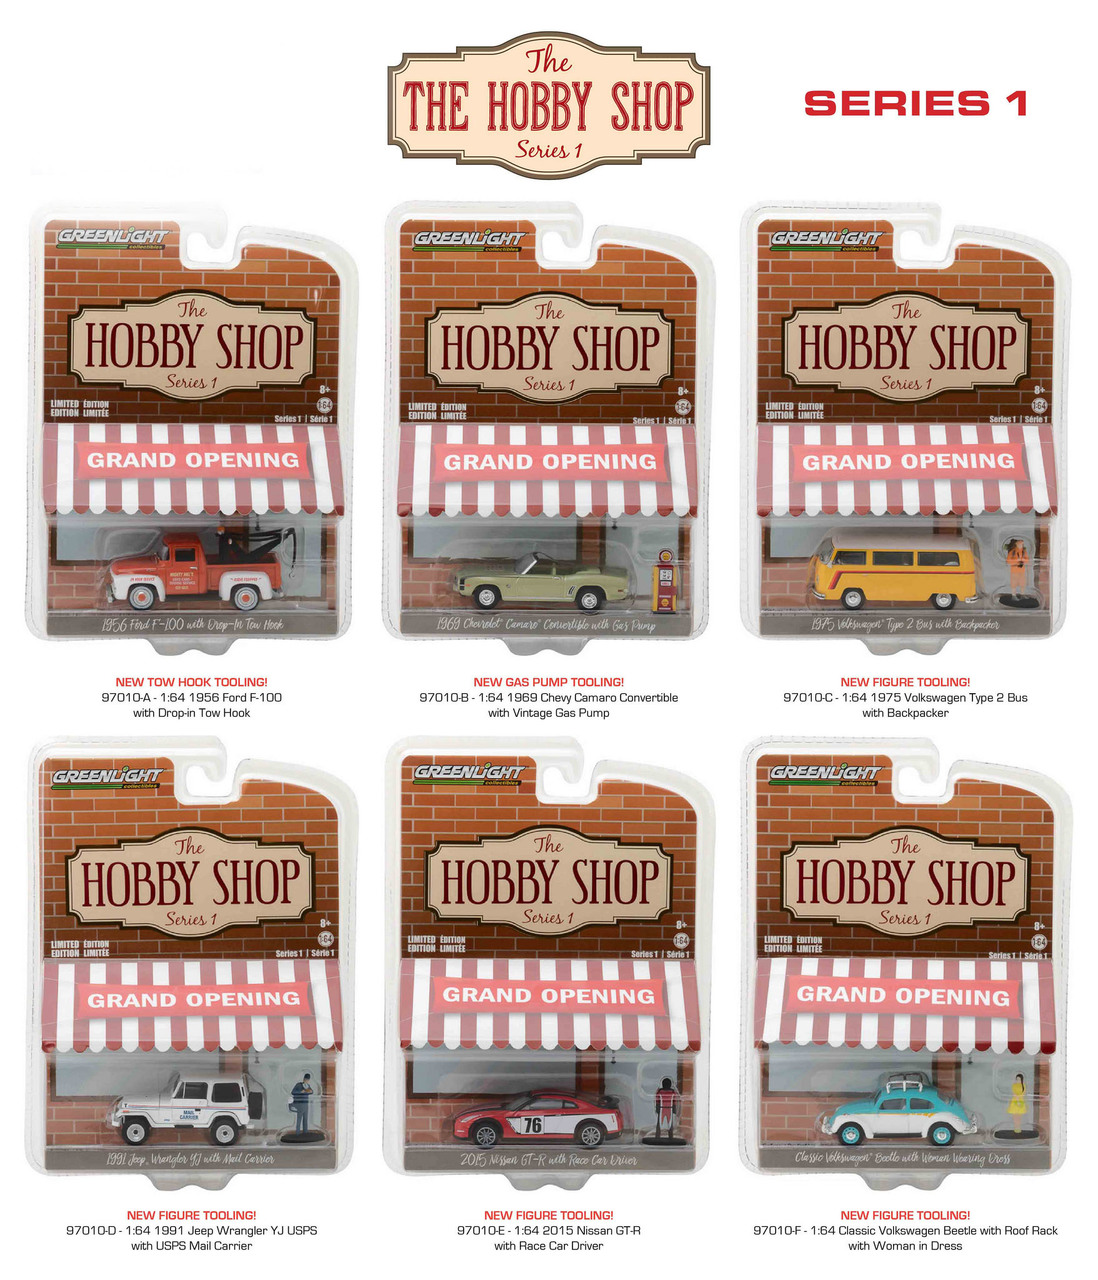 The Hobby Shop Series 1 6pc Diecast Car Set 1/64 Diecast Model Cars by Greenlight